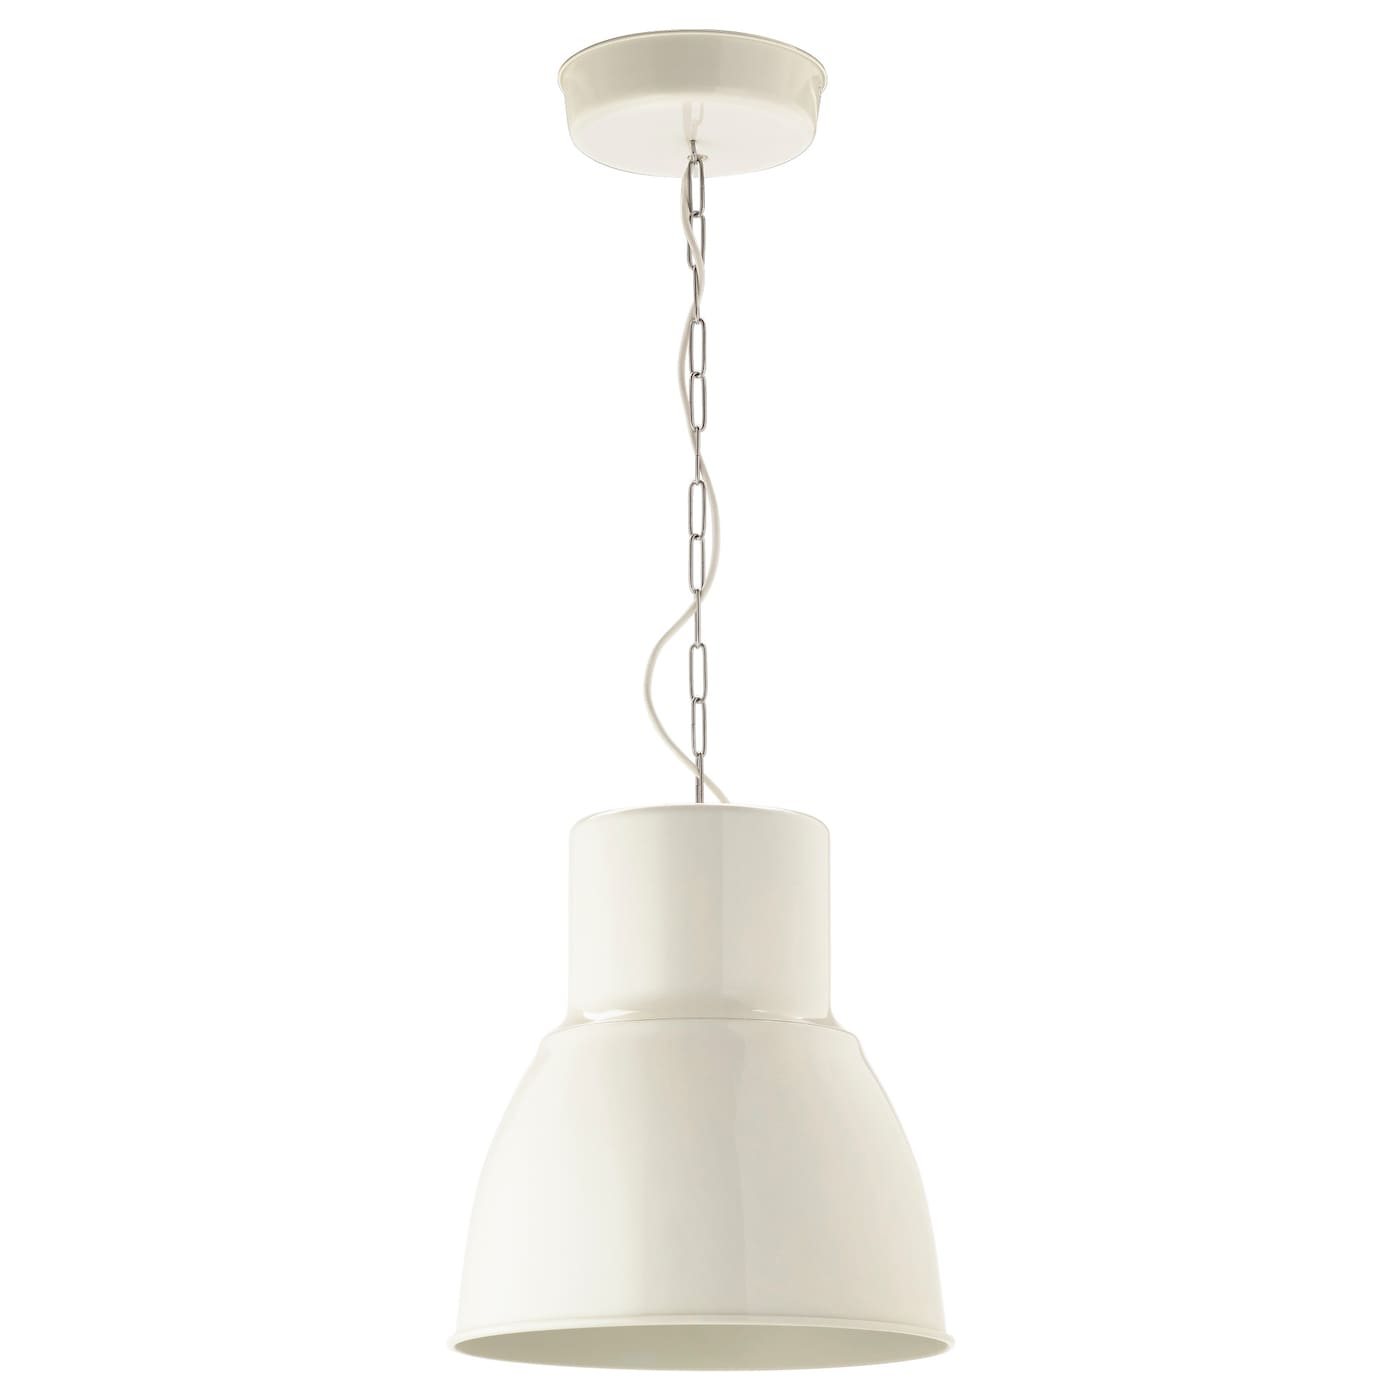 hektar pendant lamp white 38 cm ikea. Black Bedroom Furniture Sets. Home Design Ideas